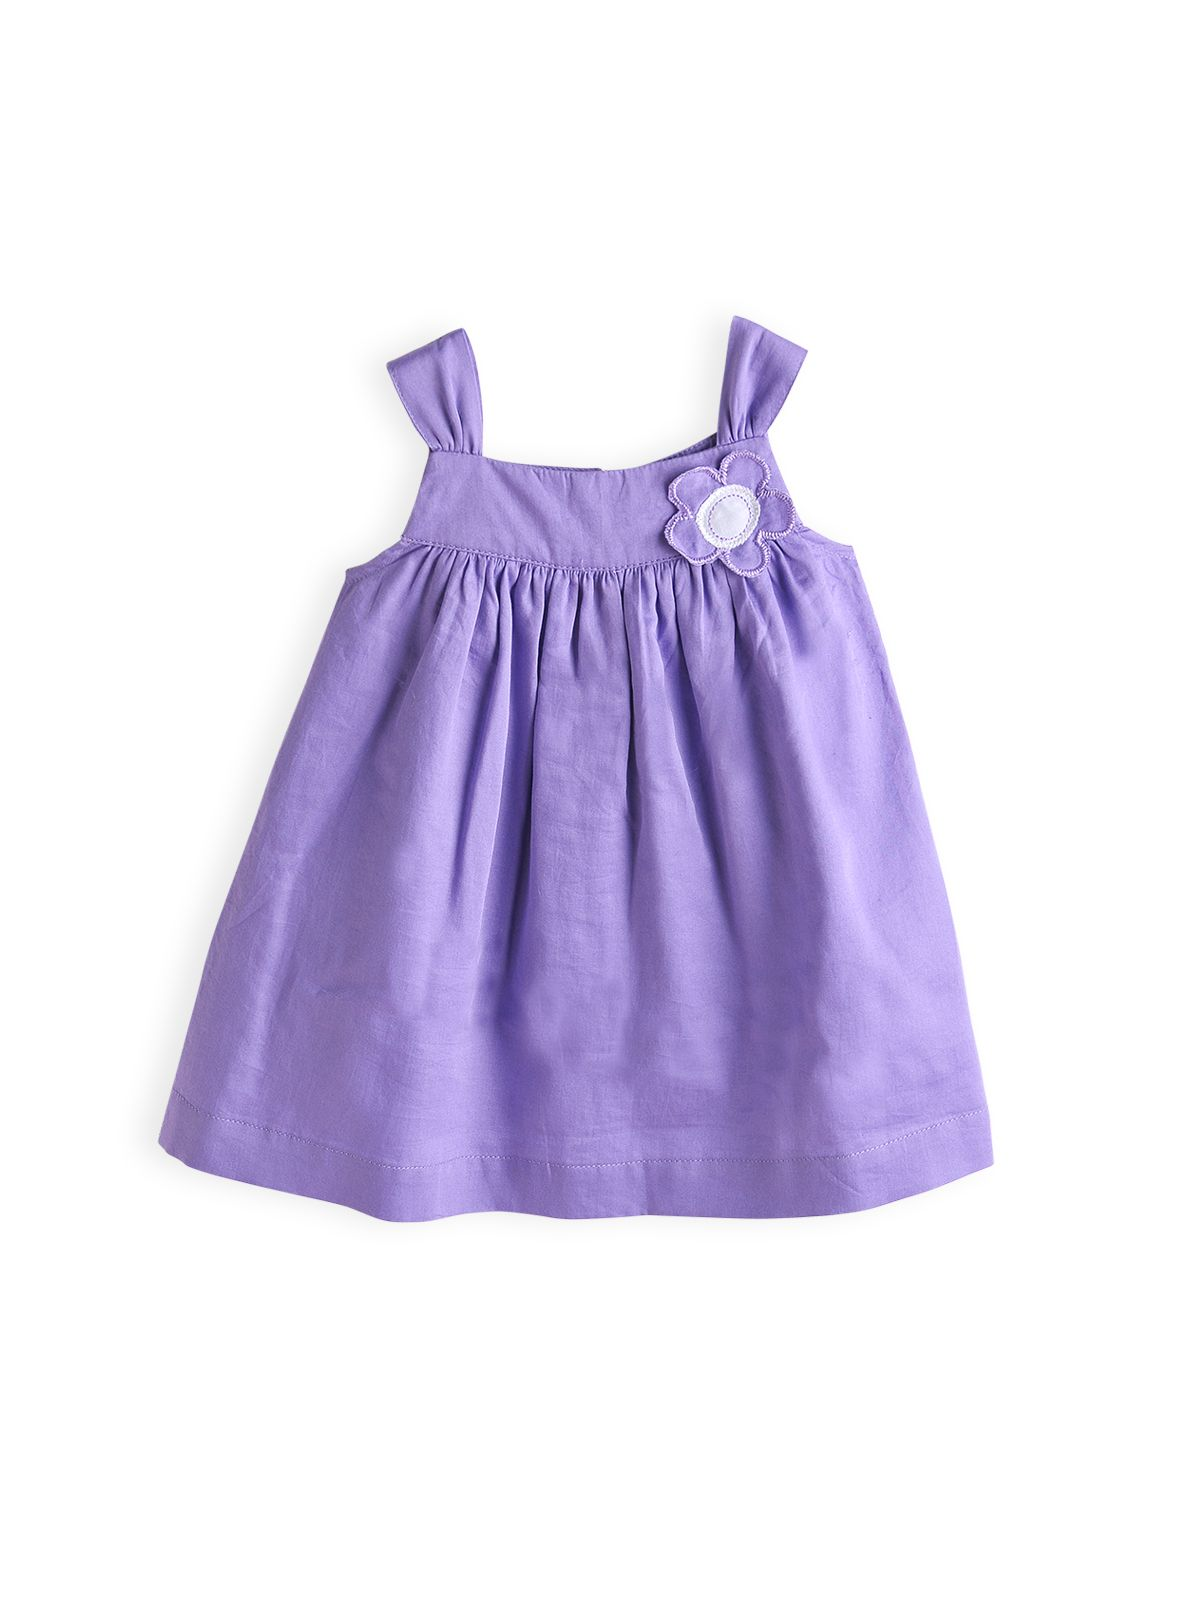 Girls daisy trim dress